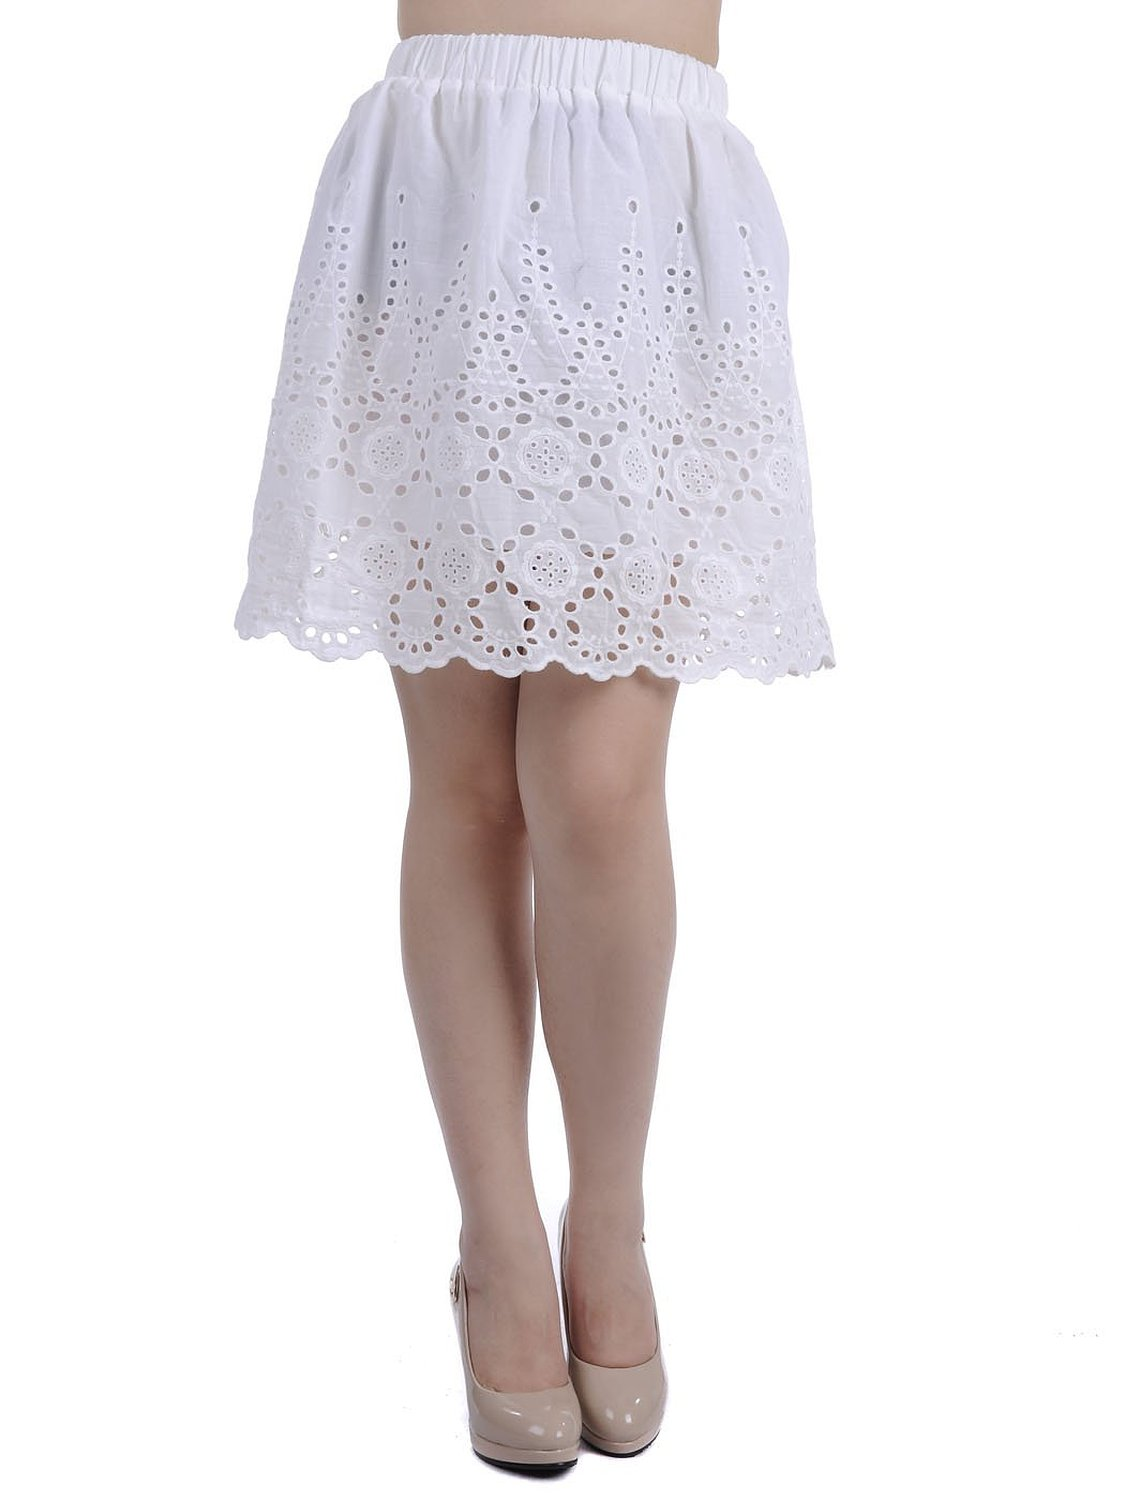 Kaci s/m fit white scallop hemline eyelet lace detail midi length skirt at amazon women's clothing store: